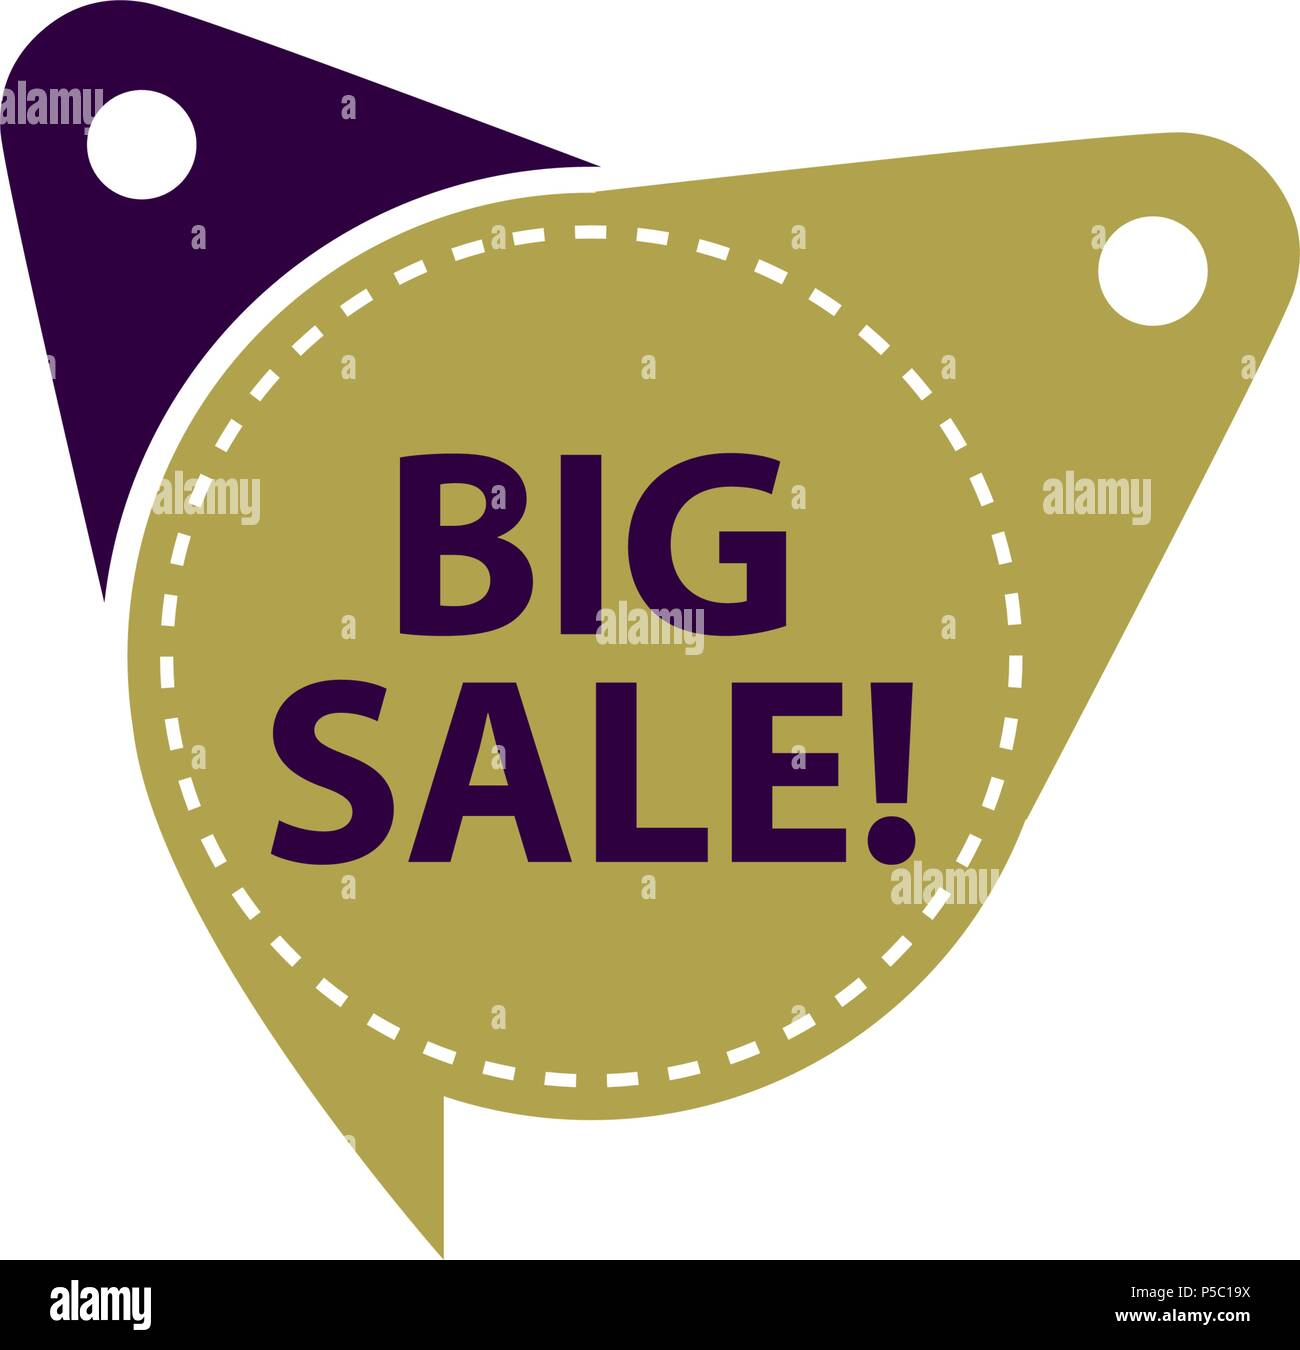 big sale tag template isolated stock vector art illustration